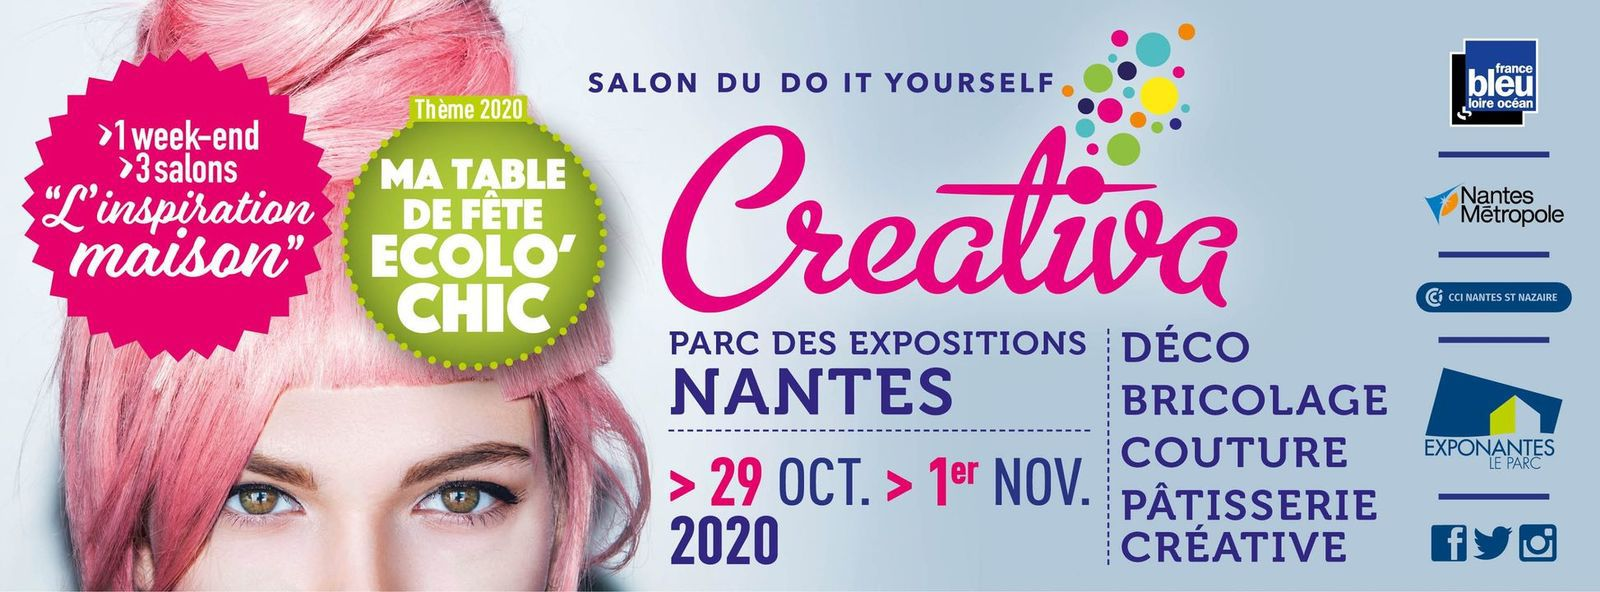 creativa nantes 2020 ateliers stampin up carter, mini album décoration de table boite